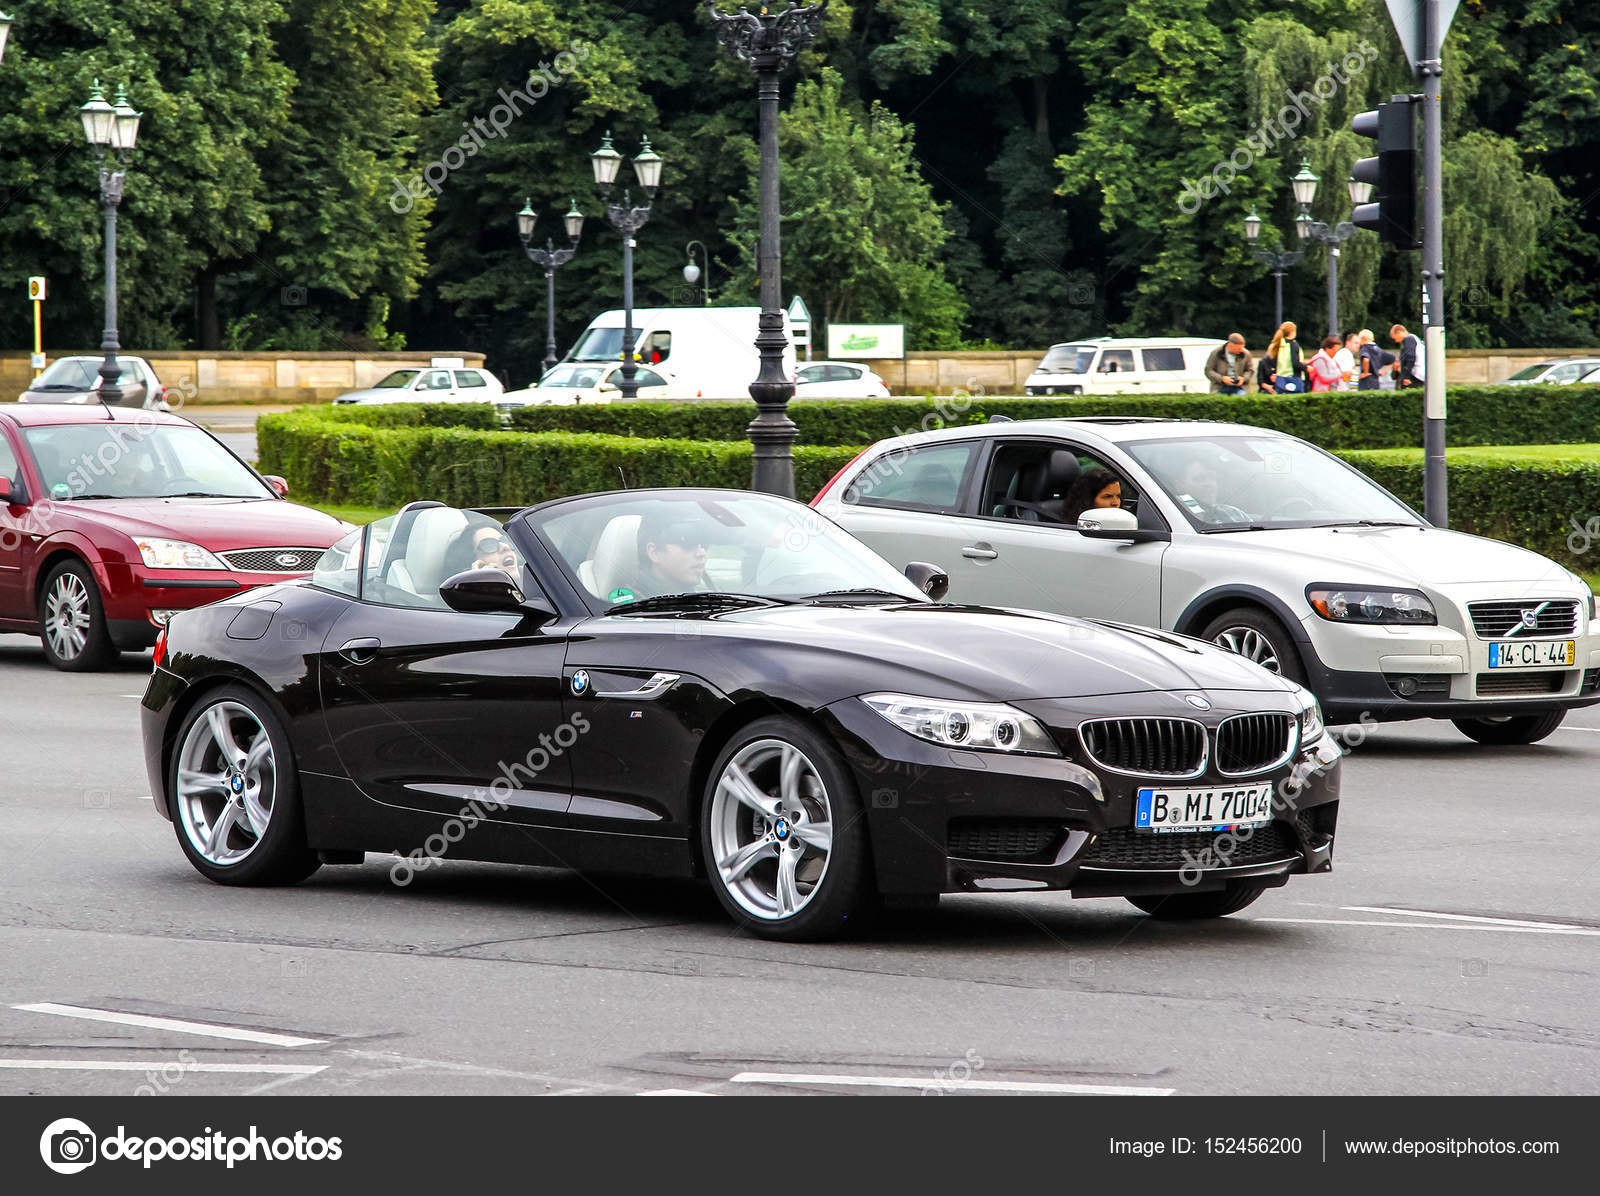 bmw z4 bmw m coupe crapwagon outtake a mystic. Black Bedroom Furniture Sets. Home Design Ideas